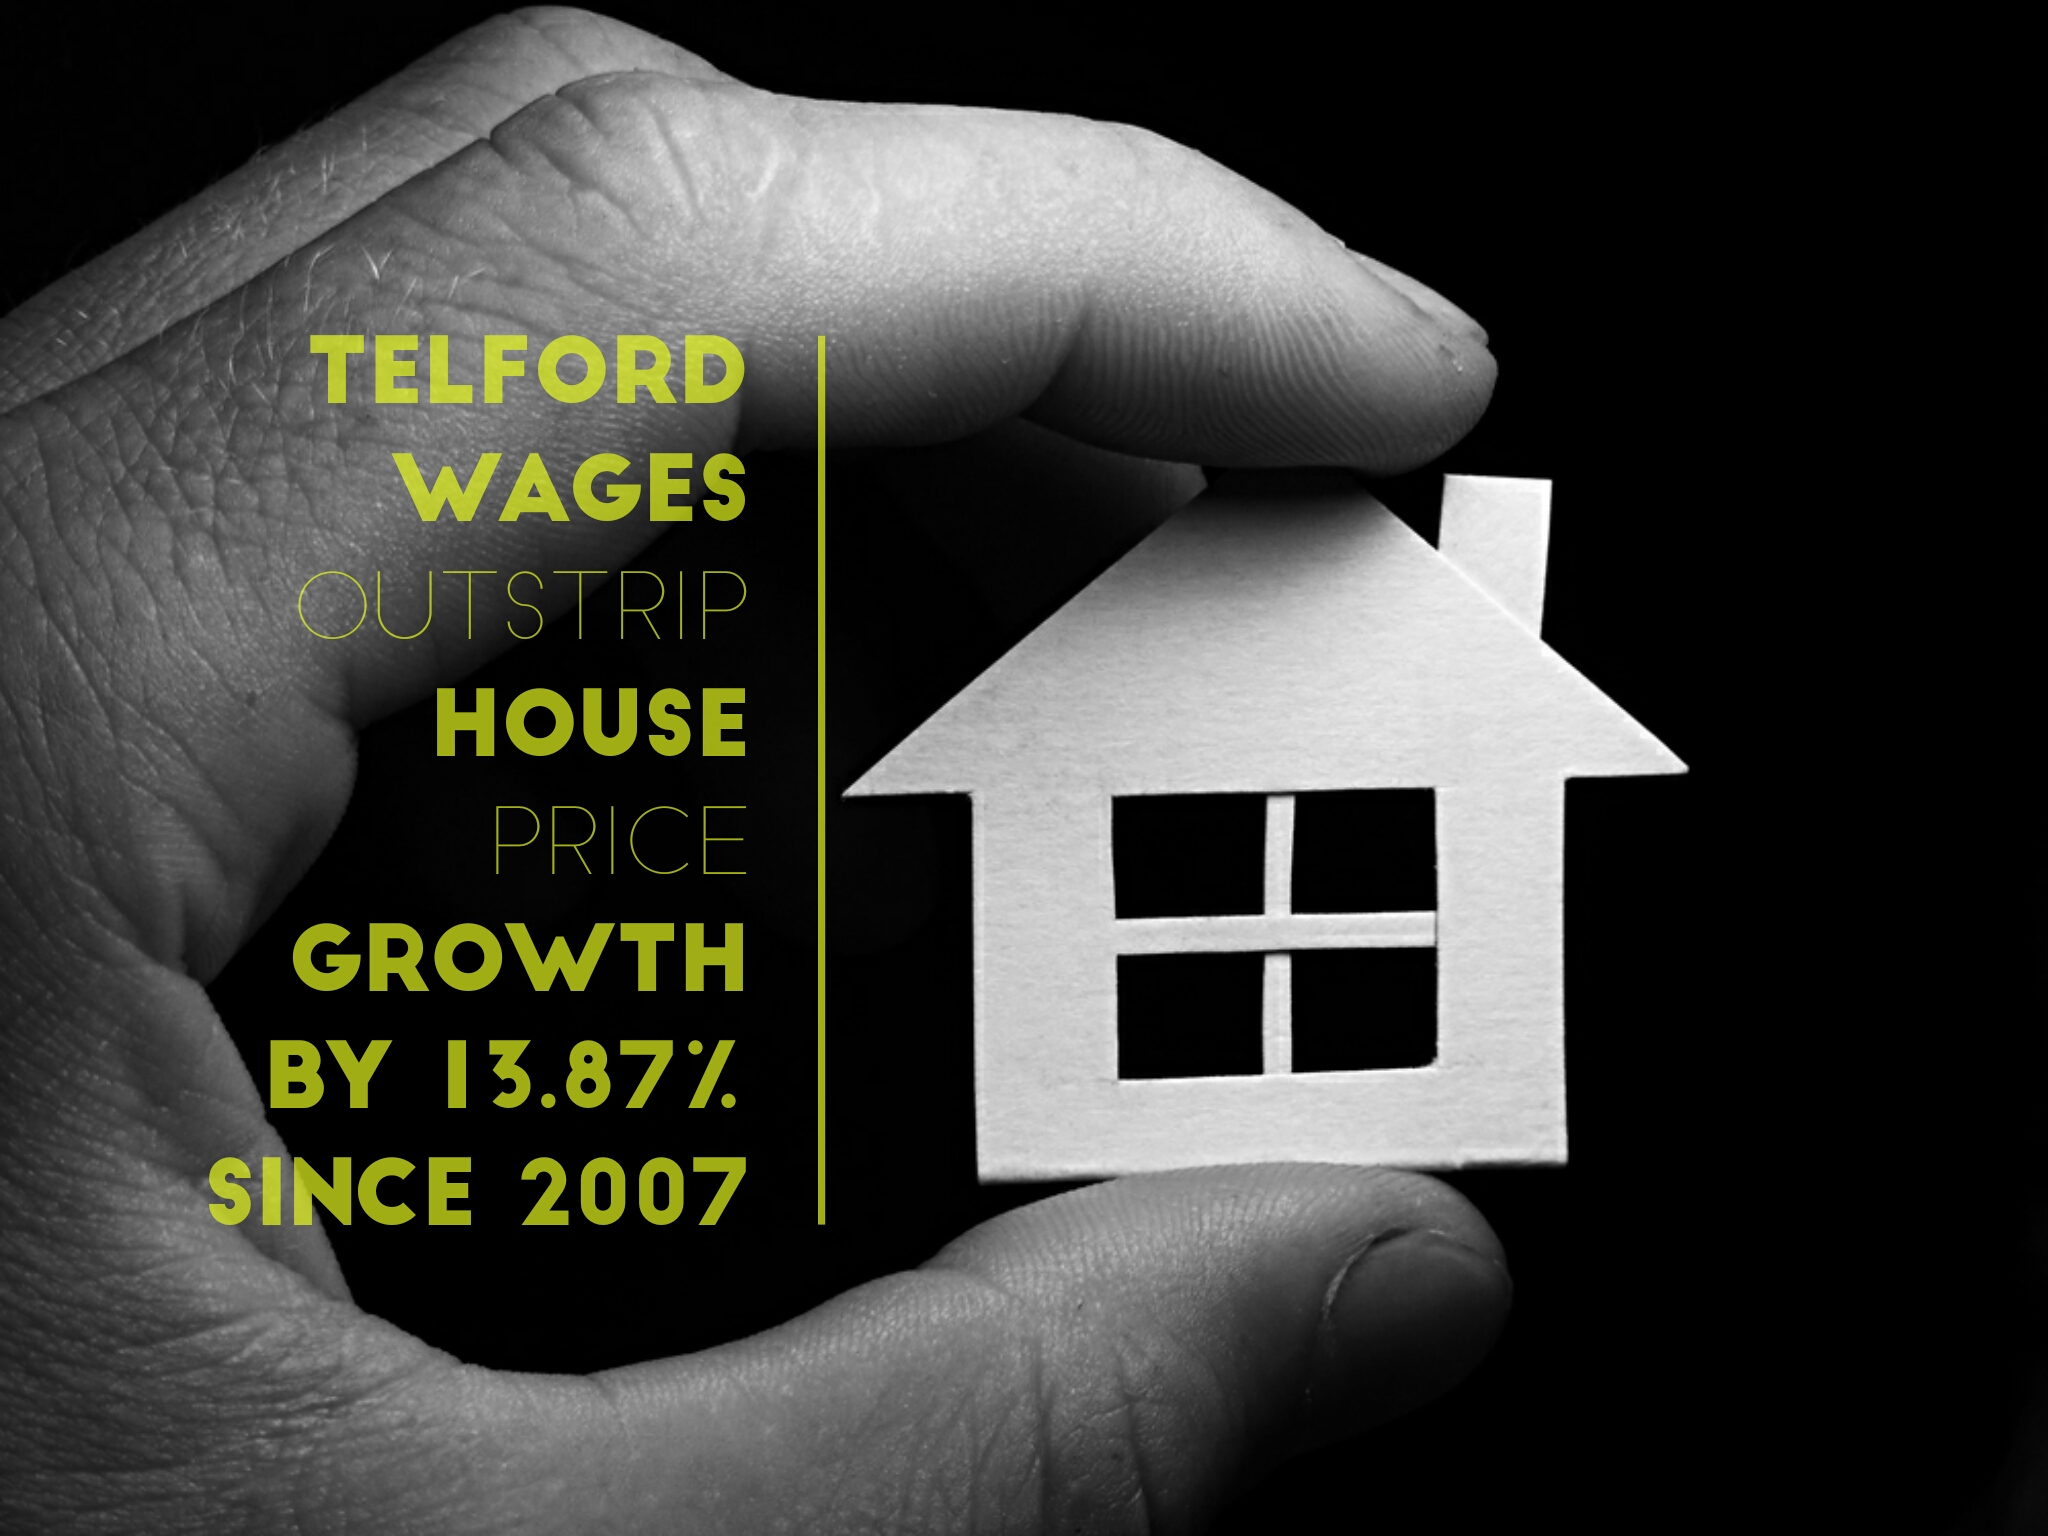 Telford Wages Outstrip House Price Growth by 13.87% since 2007